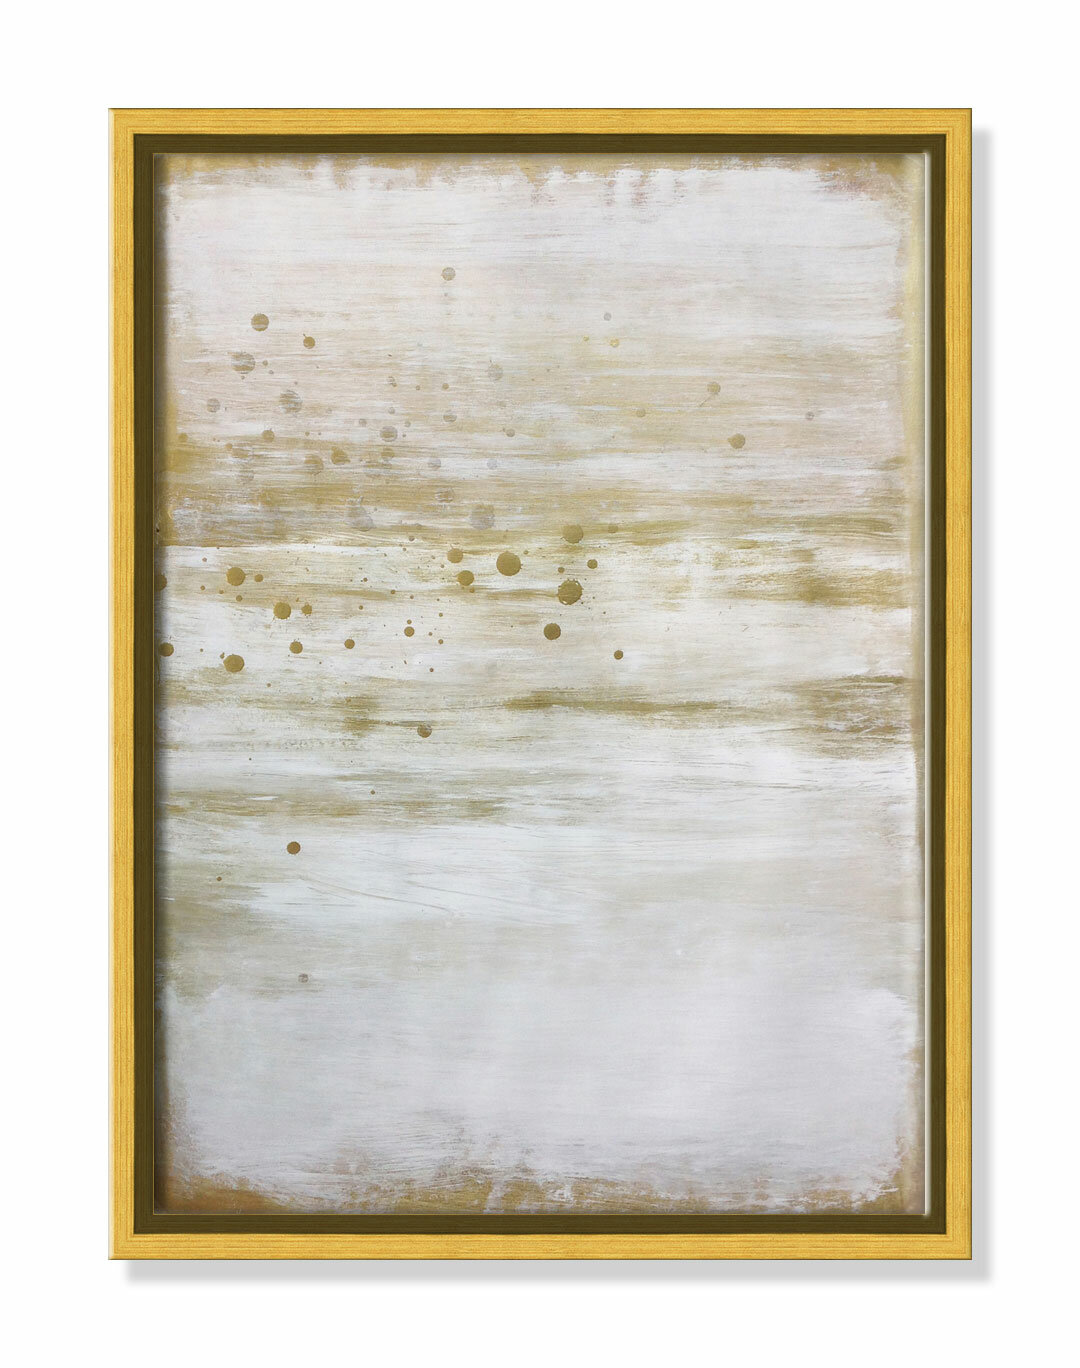 Casafinearts Golden Whiteout Floater Frame Painting On Canvas Wayfair